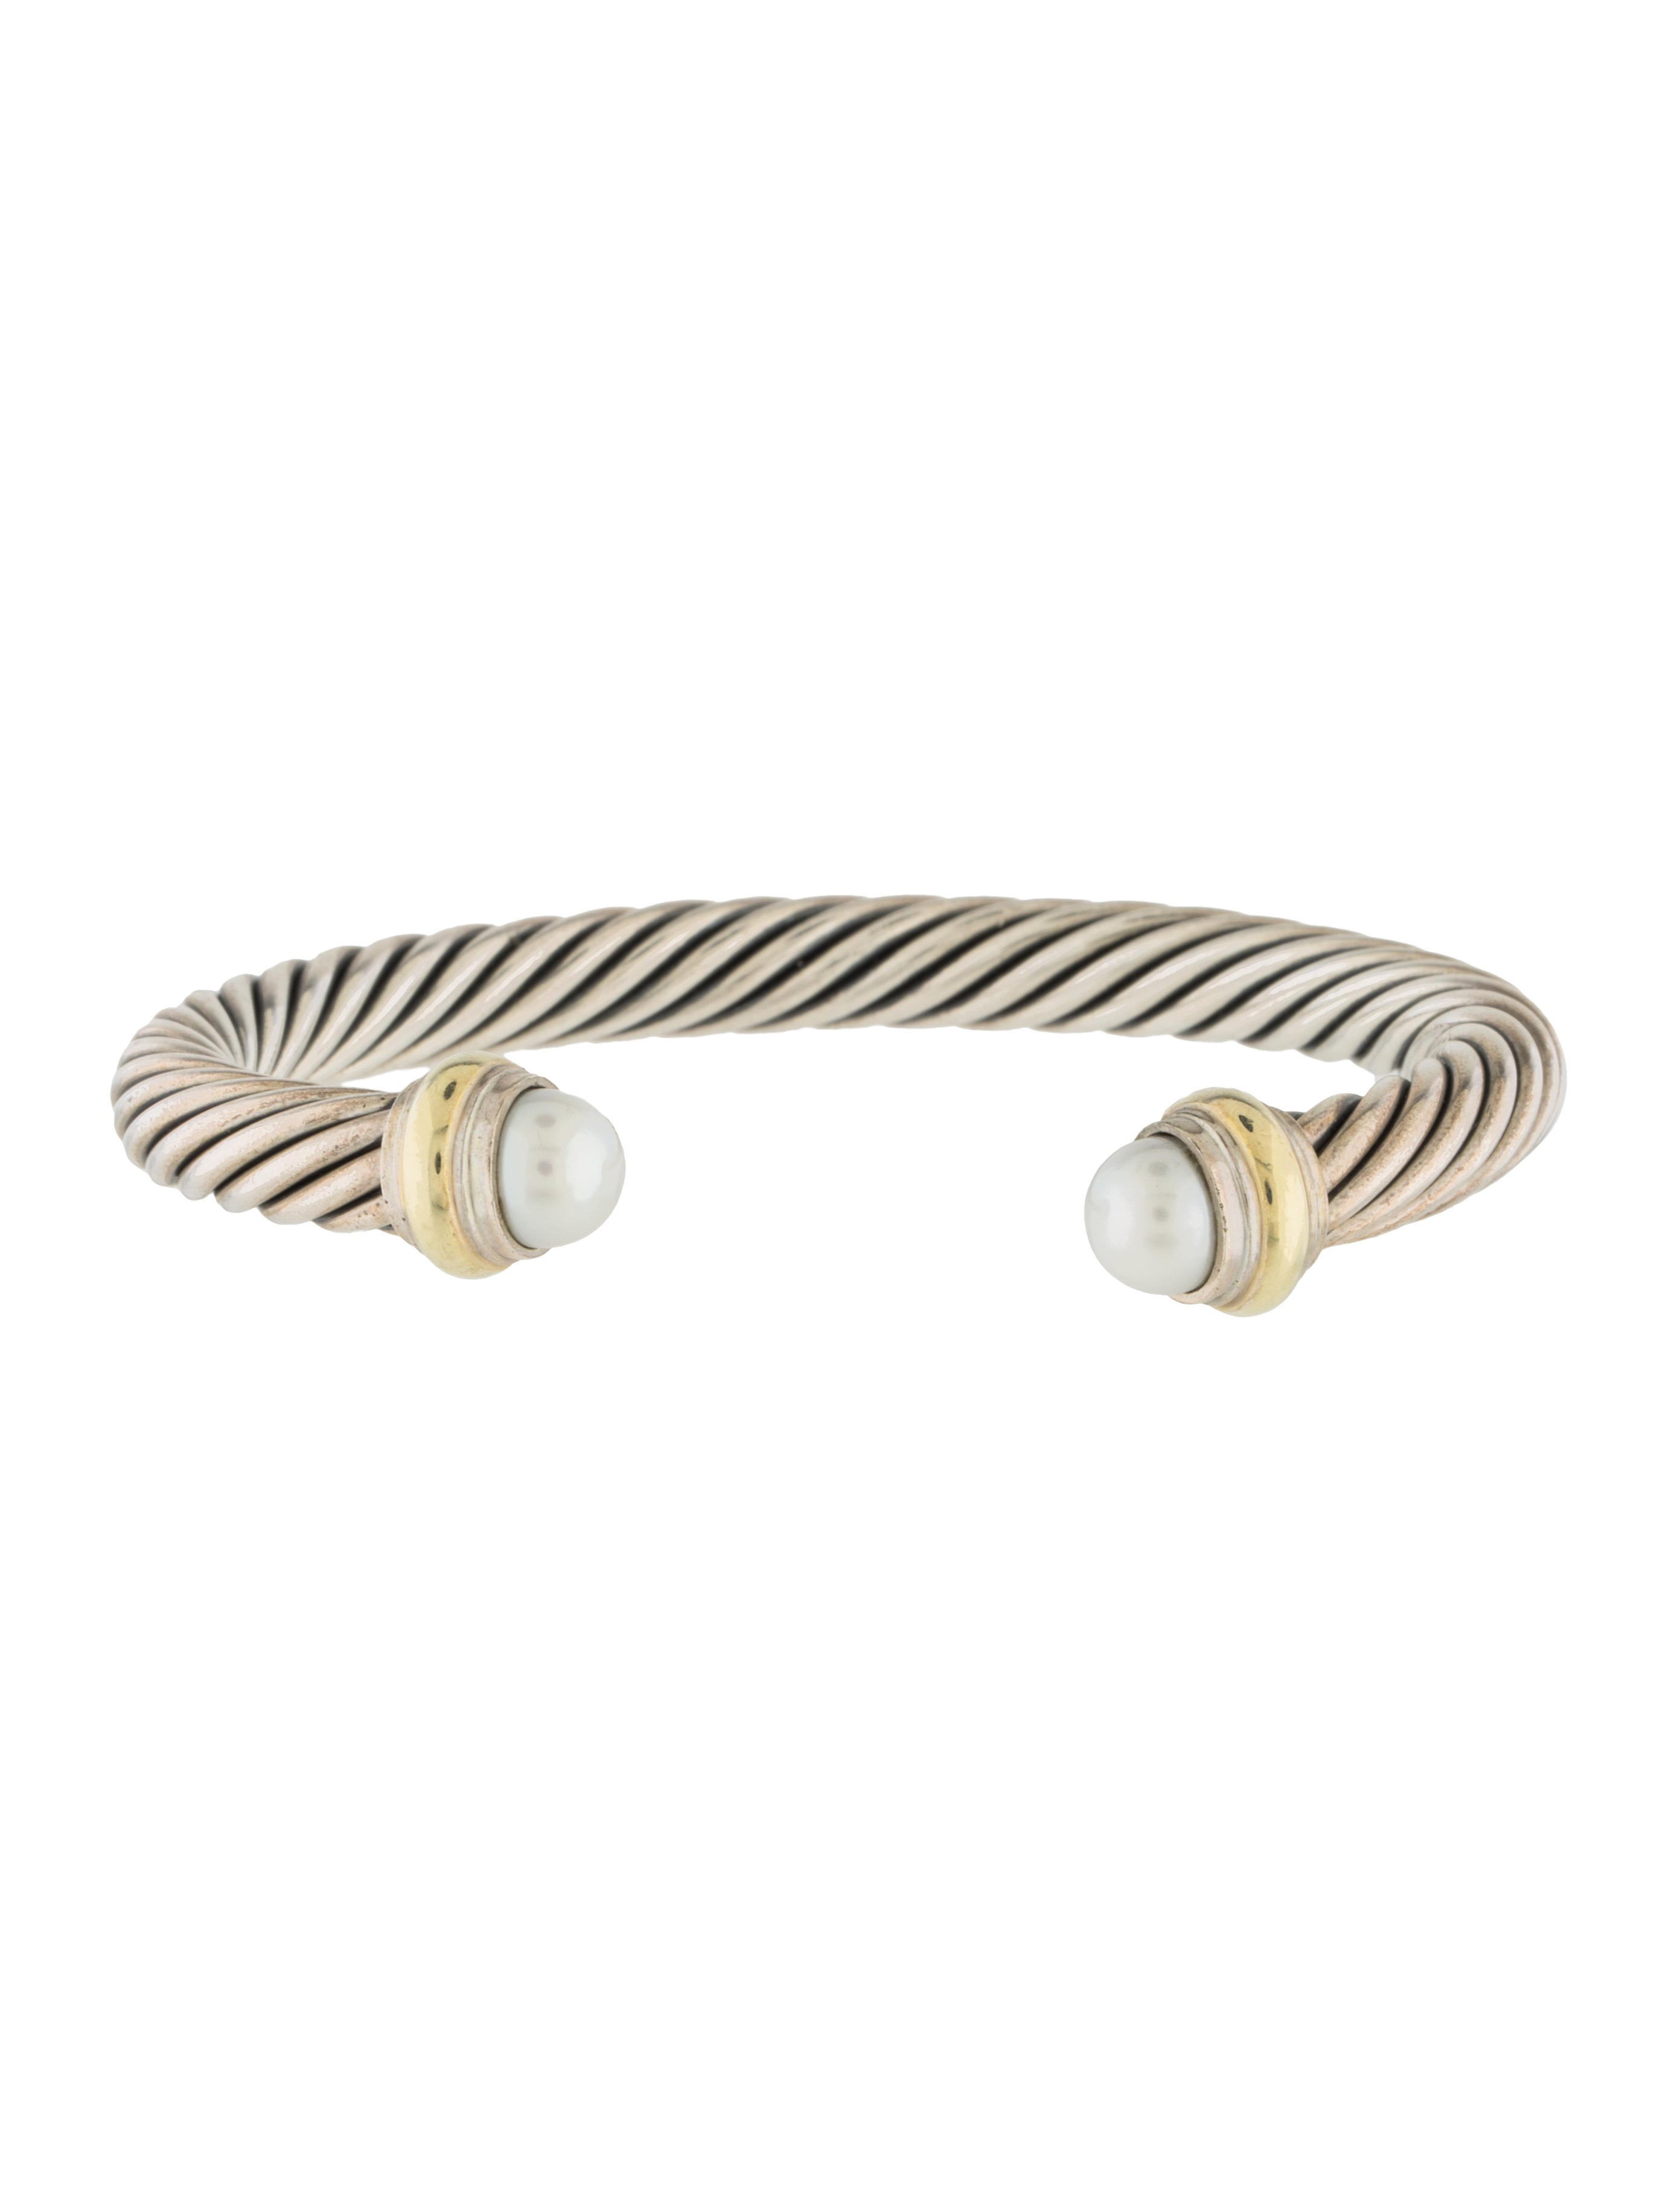 David yurman pearl cable classics bracelet bracelets for David yurman inspired bracelet cable